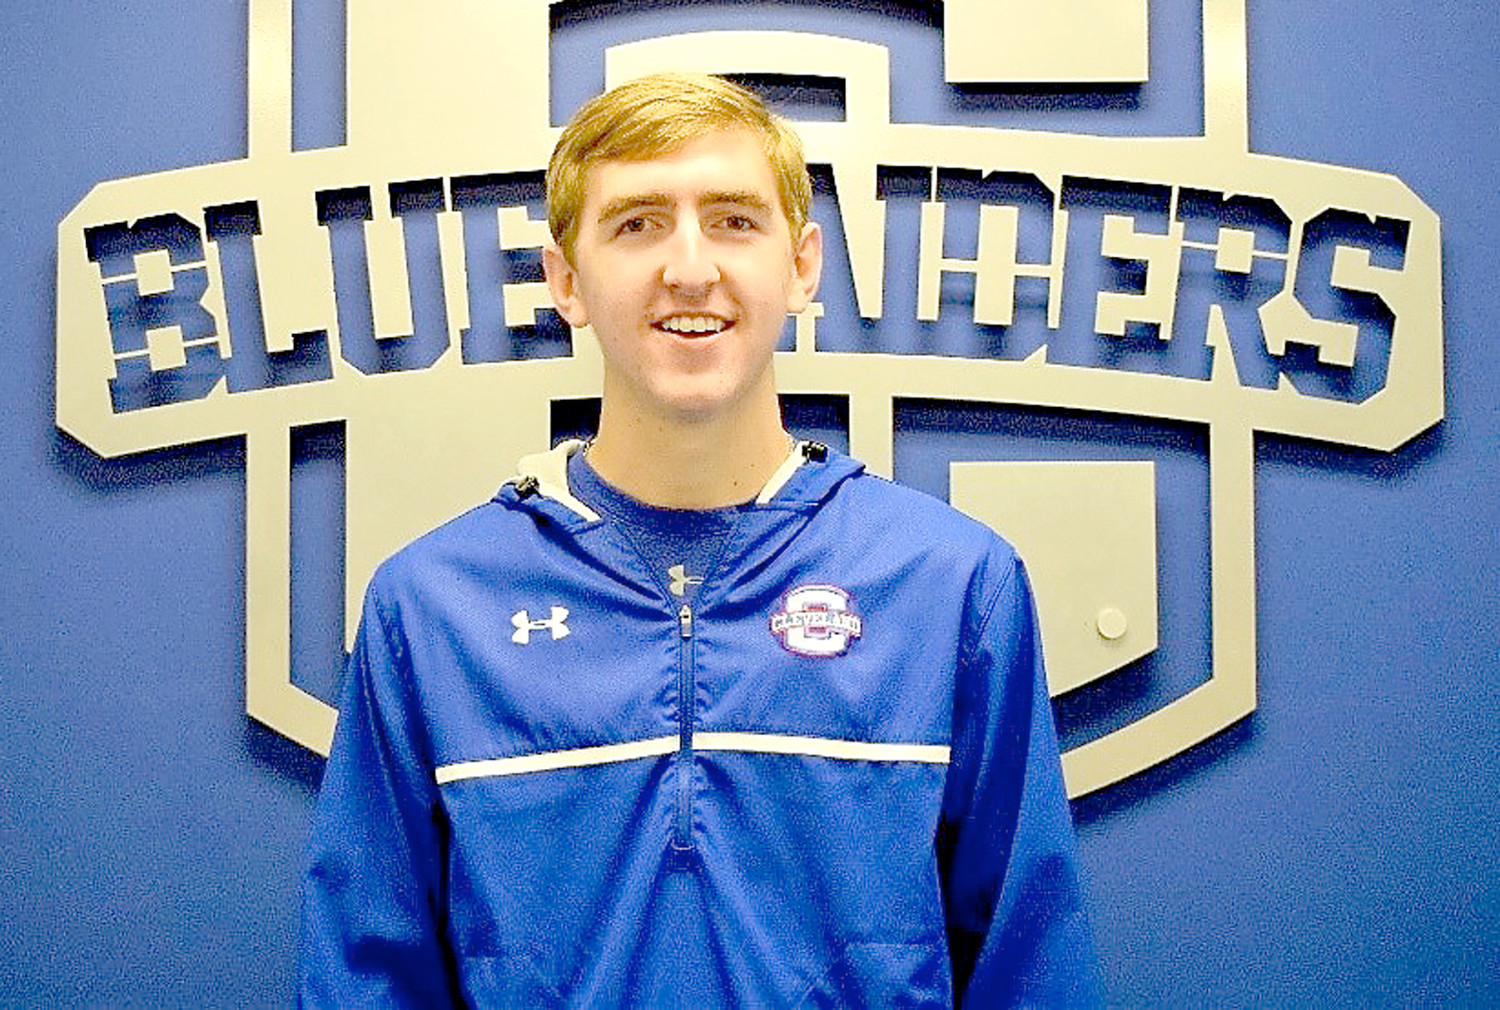 CLEVELAND HIGH SCHOOL senior Brian Byerly has been named a state finalist for the prestigious U.S. Pesidential Scholars Program. He is also a National Merit Semifinalist.